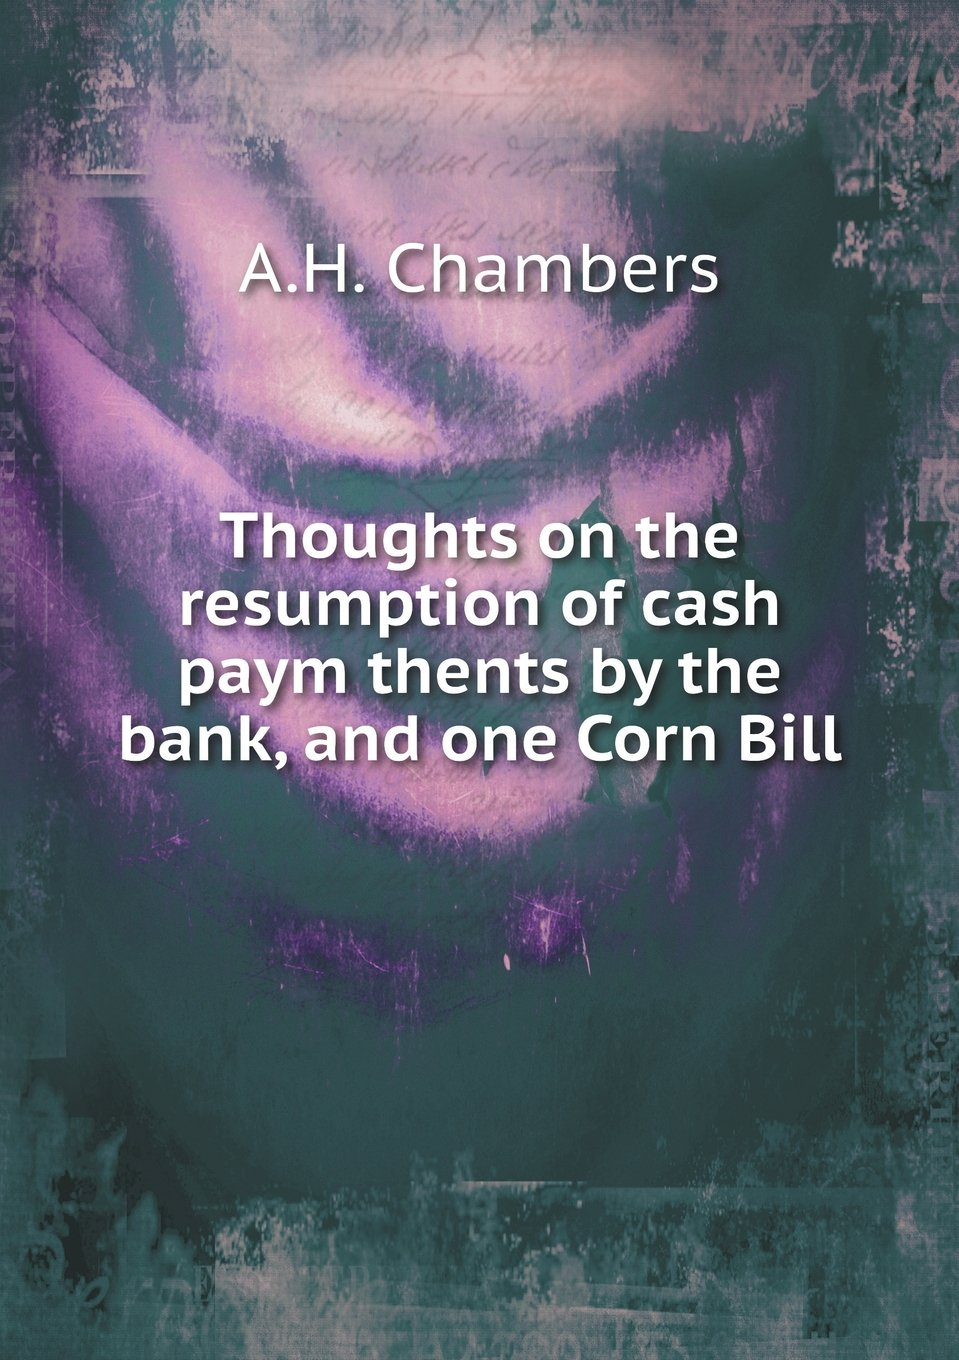 Thoughts on the resumption of cash paym thents by the bank, and one Corn Bill pdf